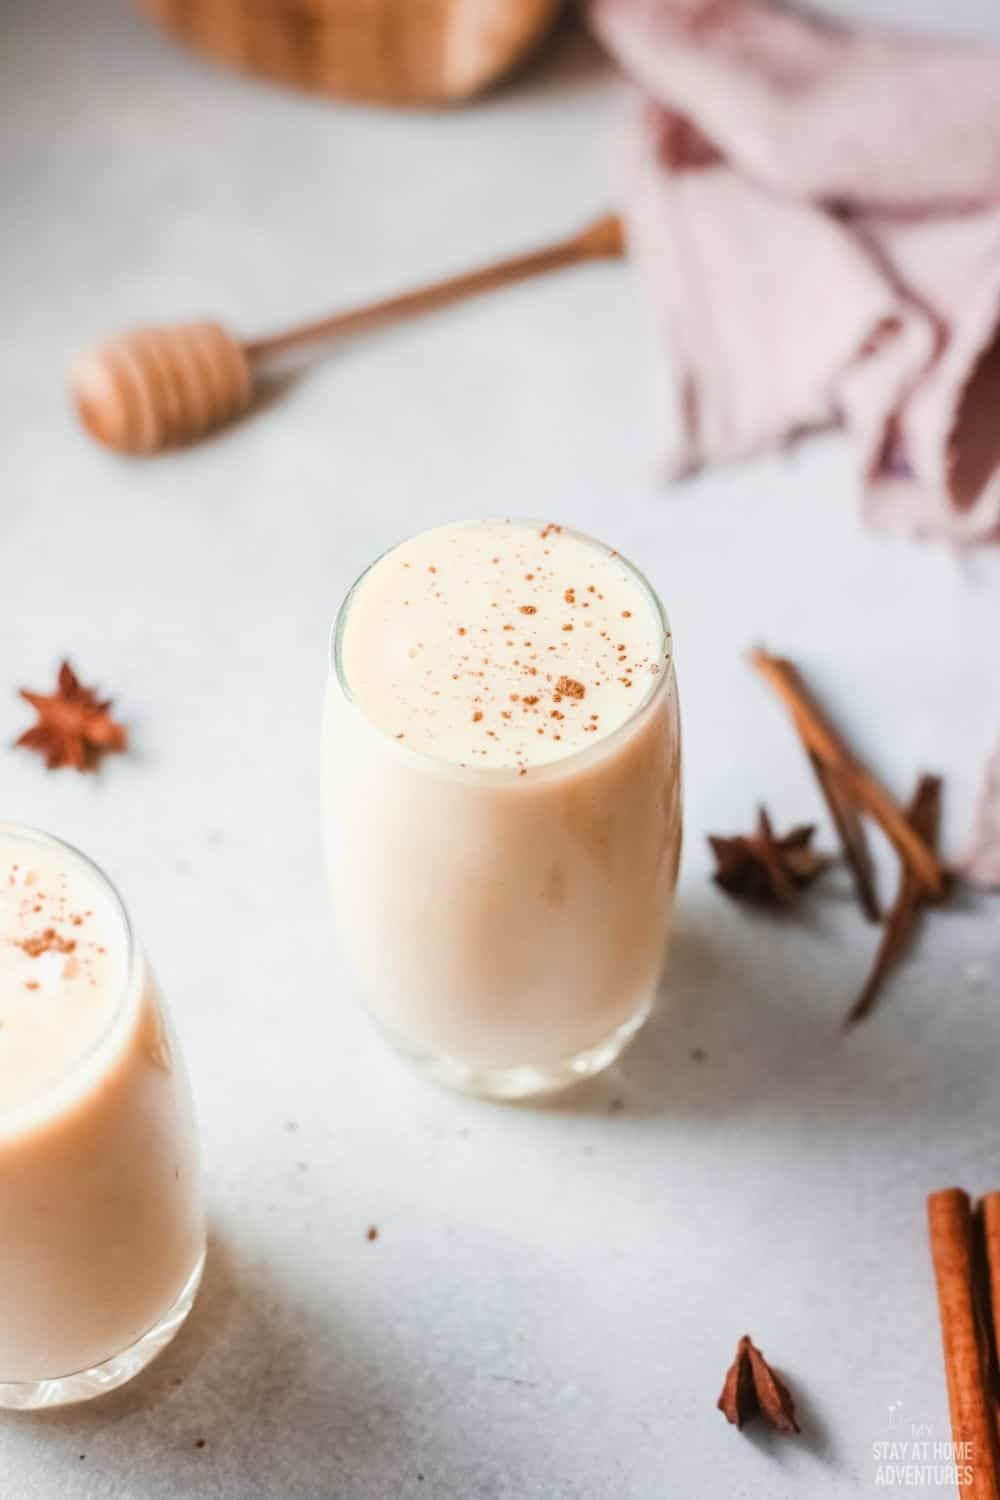 This Ponche de Crema recipe is made with condensed milk, milk, cinnamon stick, lemon zest, egg yolk, nutmeg, cloves, and rum. via @mystayathome